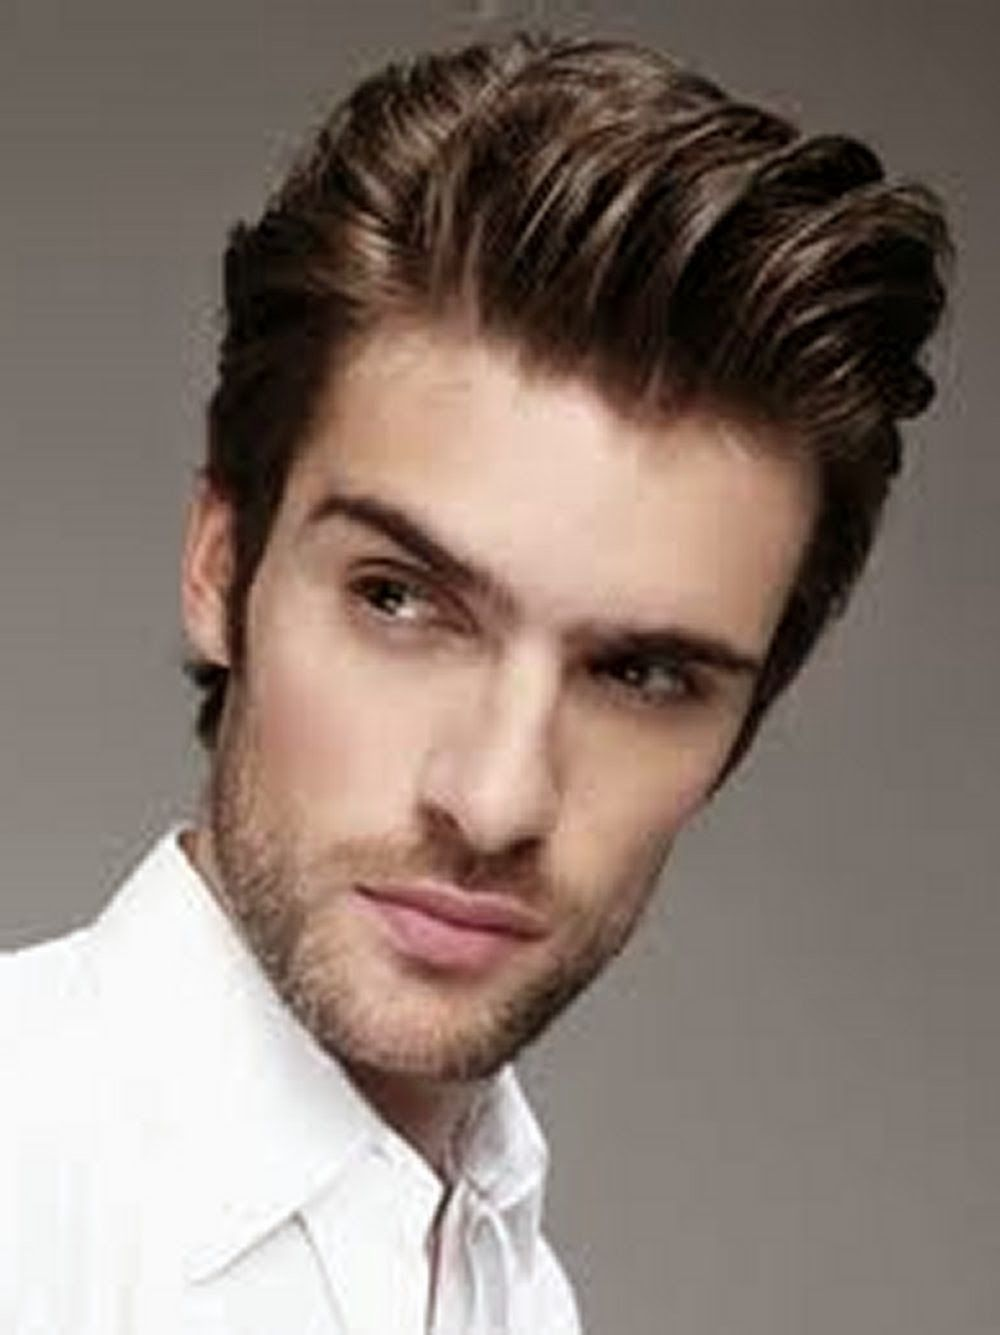 New Hairstyles For Men Nice Different New Hairstyles For Men  Hair Styles  Pinterest